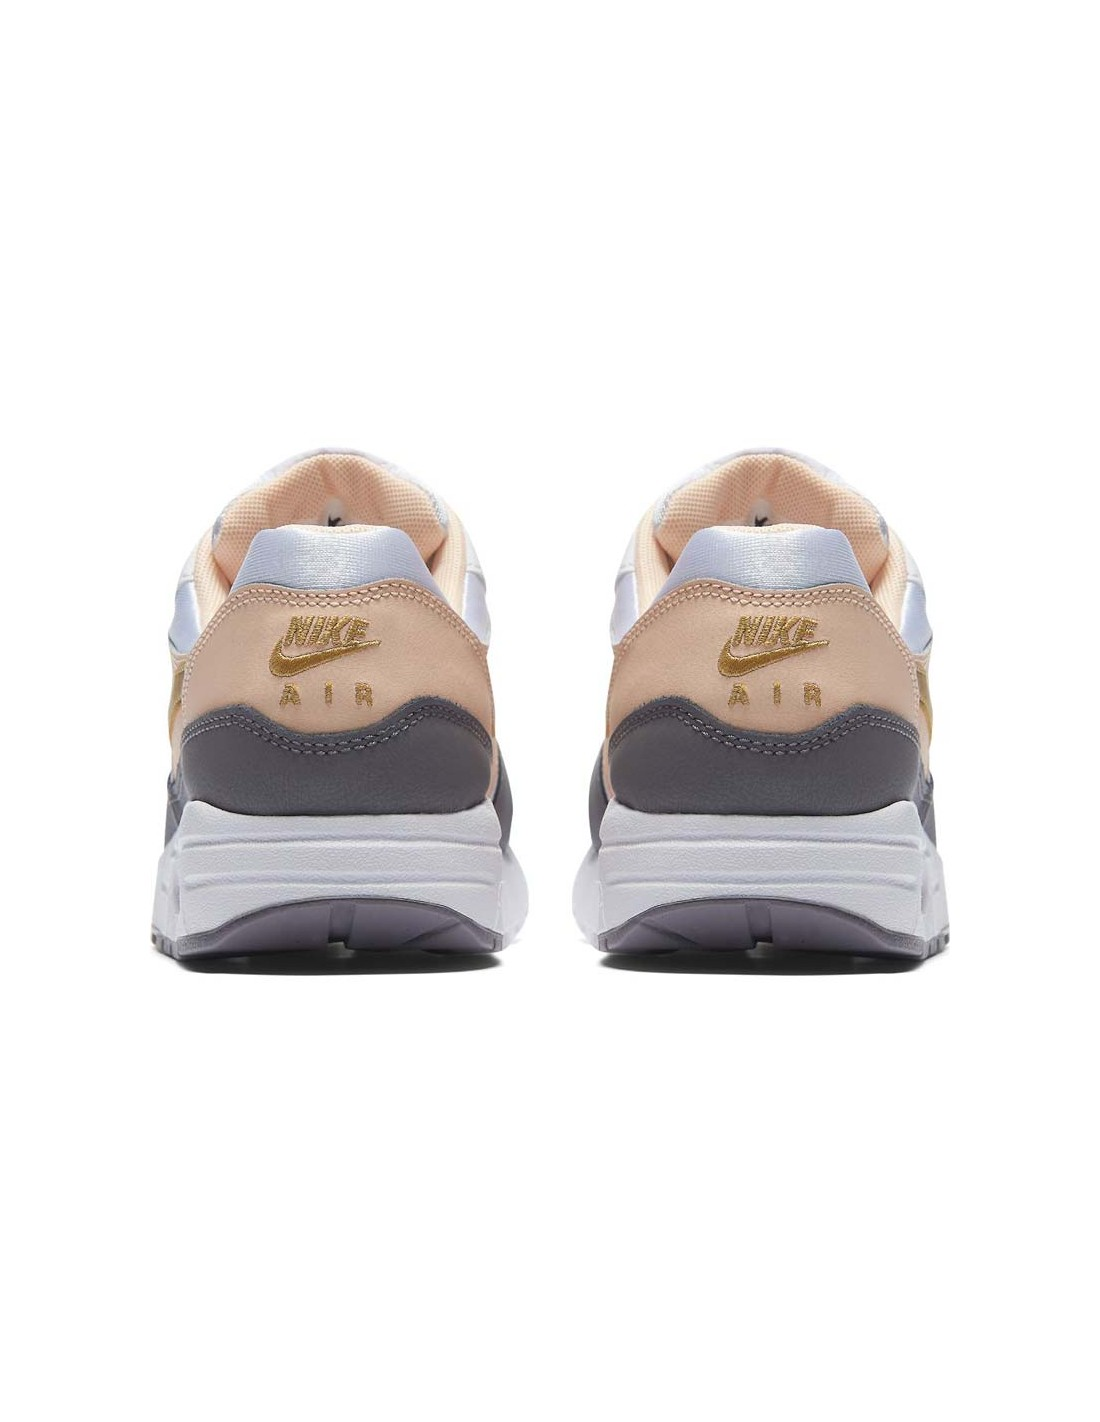 Baskets NIKE Girls' nike air max 1 (gs) Chaussure 807605 104 WHITE